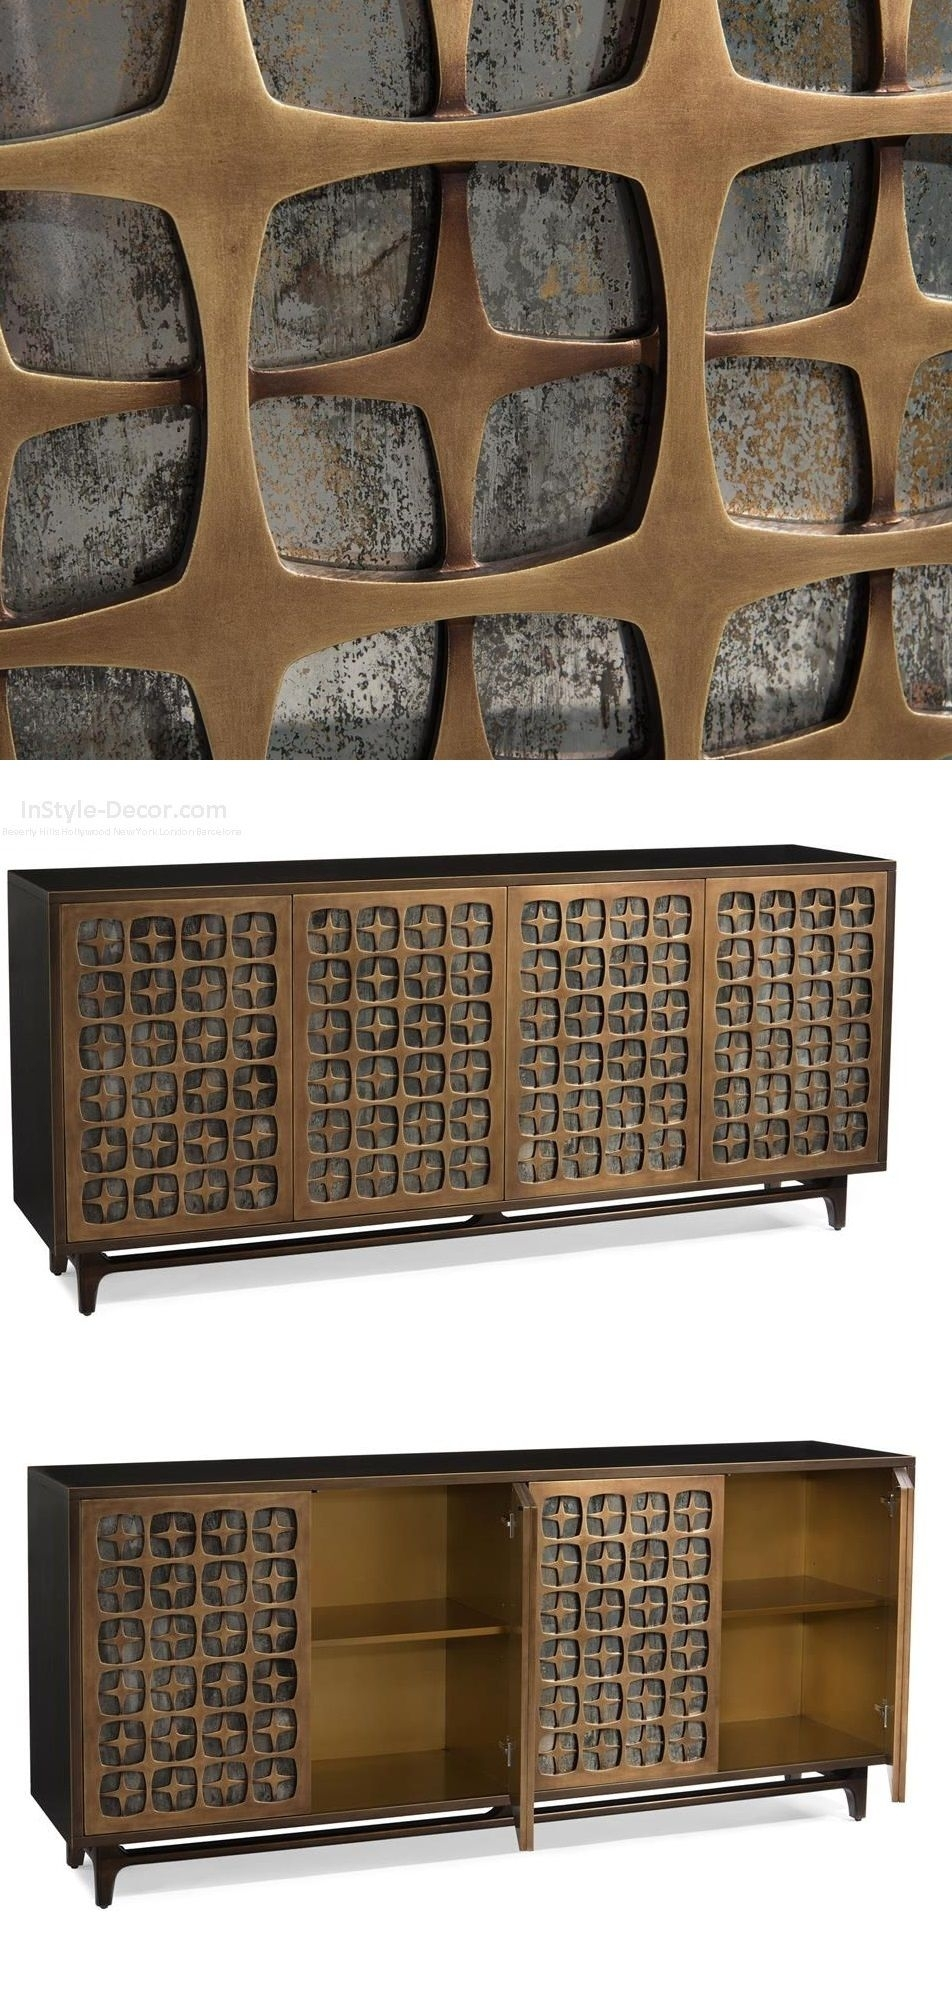 "Buffet"" ""Sideboard"" ""Credenza"" Designswww.instyle-Decor in 2-Door/2-Drawer Cast Jali Sideboards (Image 1 of 30)"